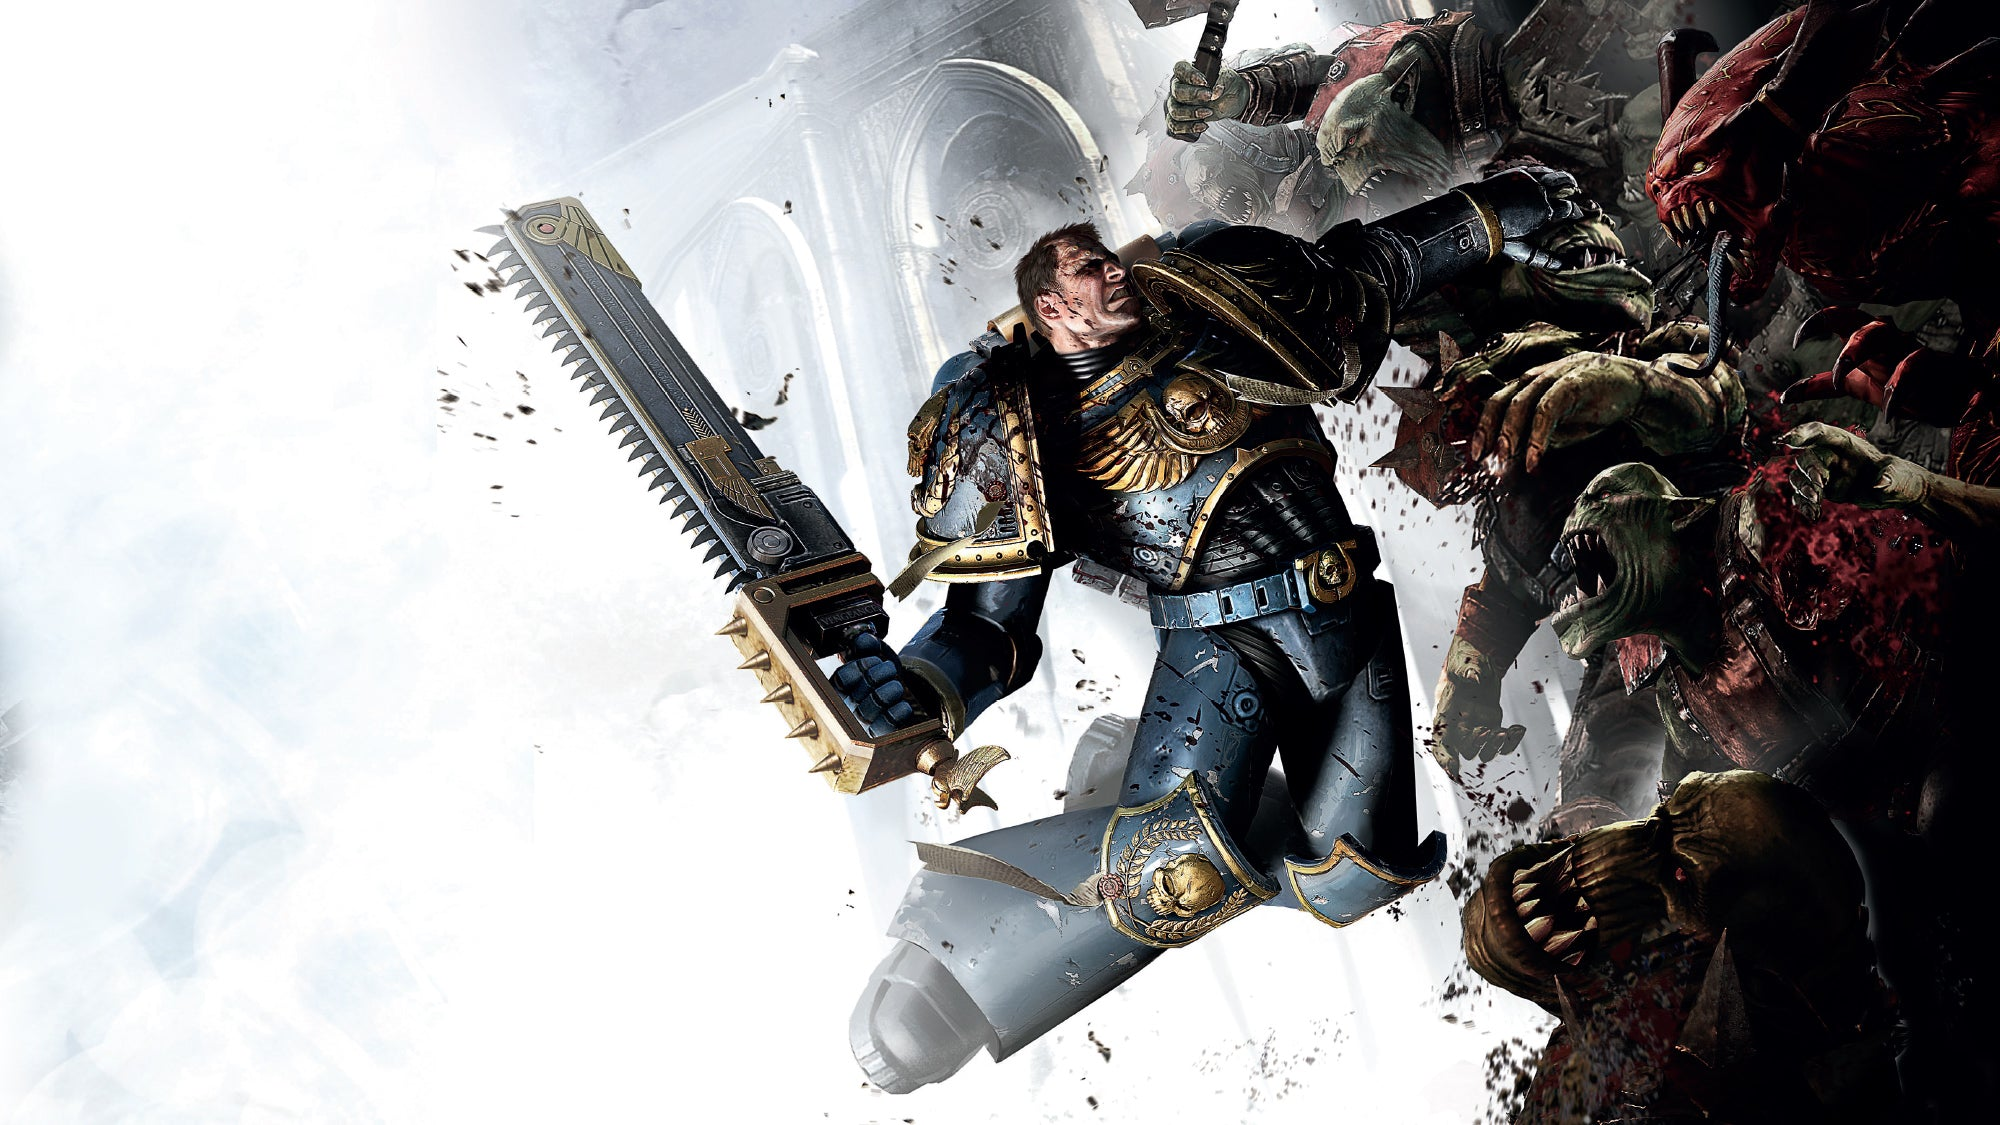 Official artwork from Warhammer 40,000: Space Marine.